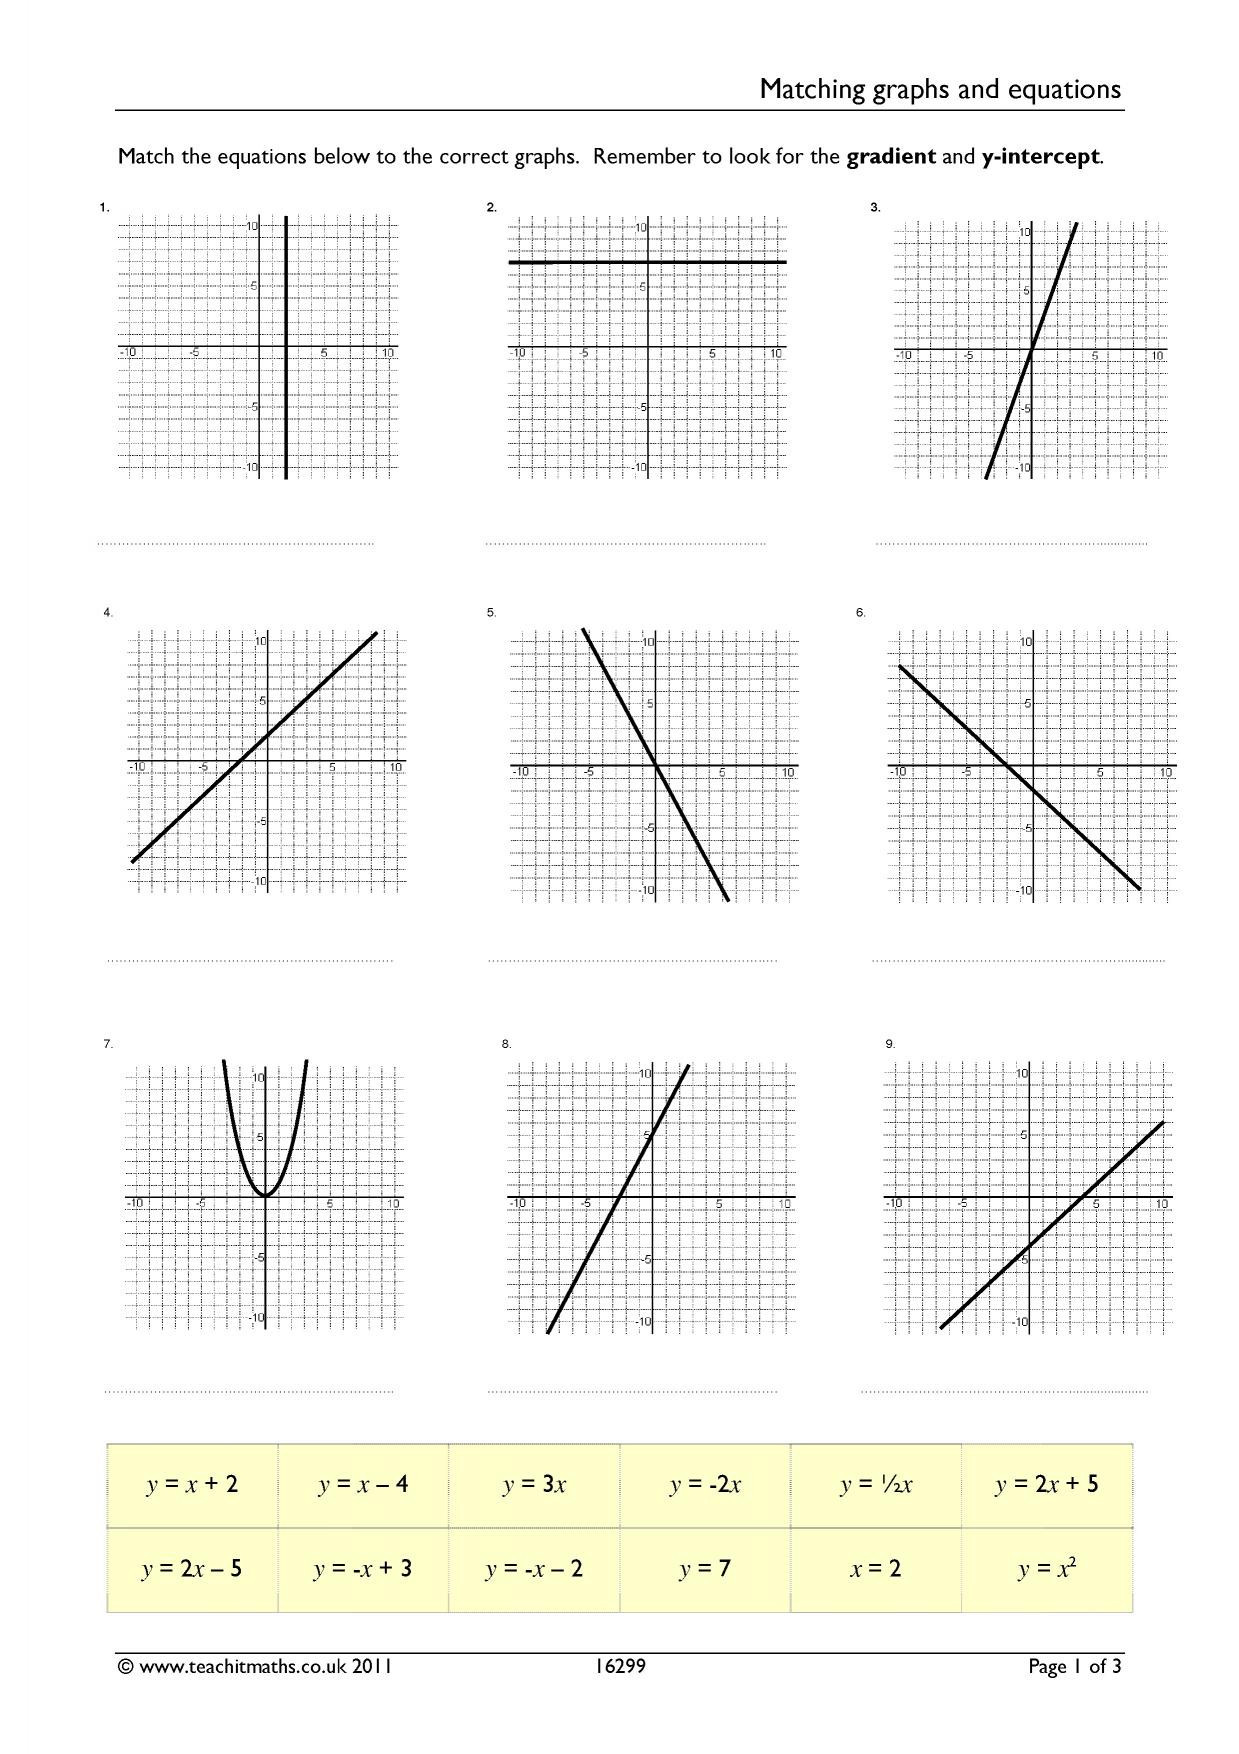 Writing Equations From Graphs Worksheet 20 Writing Equations From Graphs Worksheet